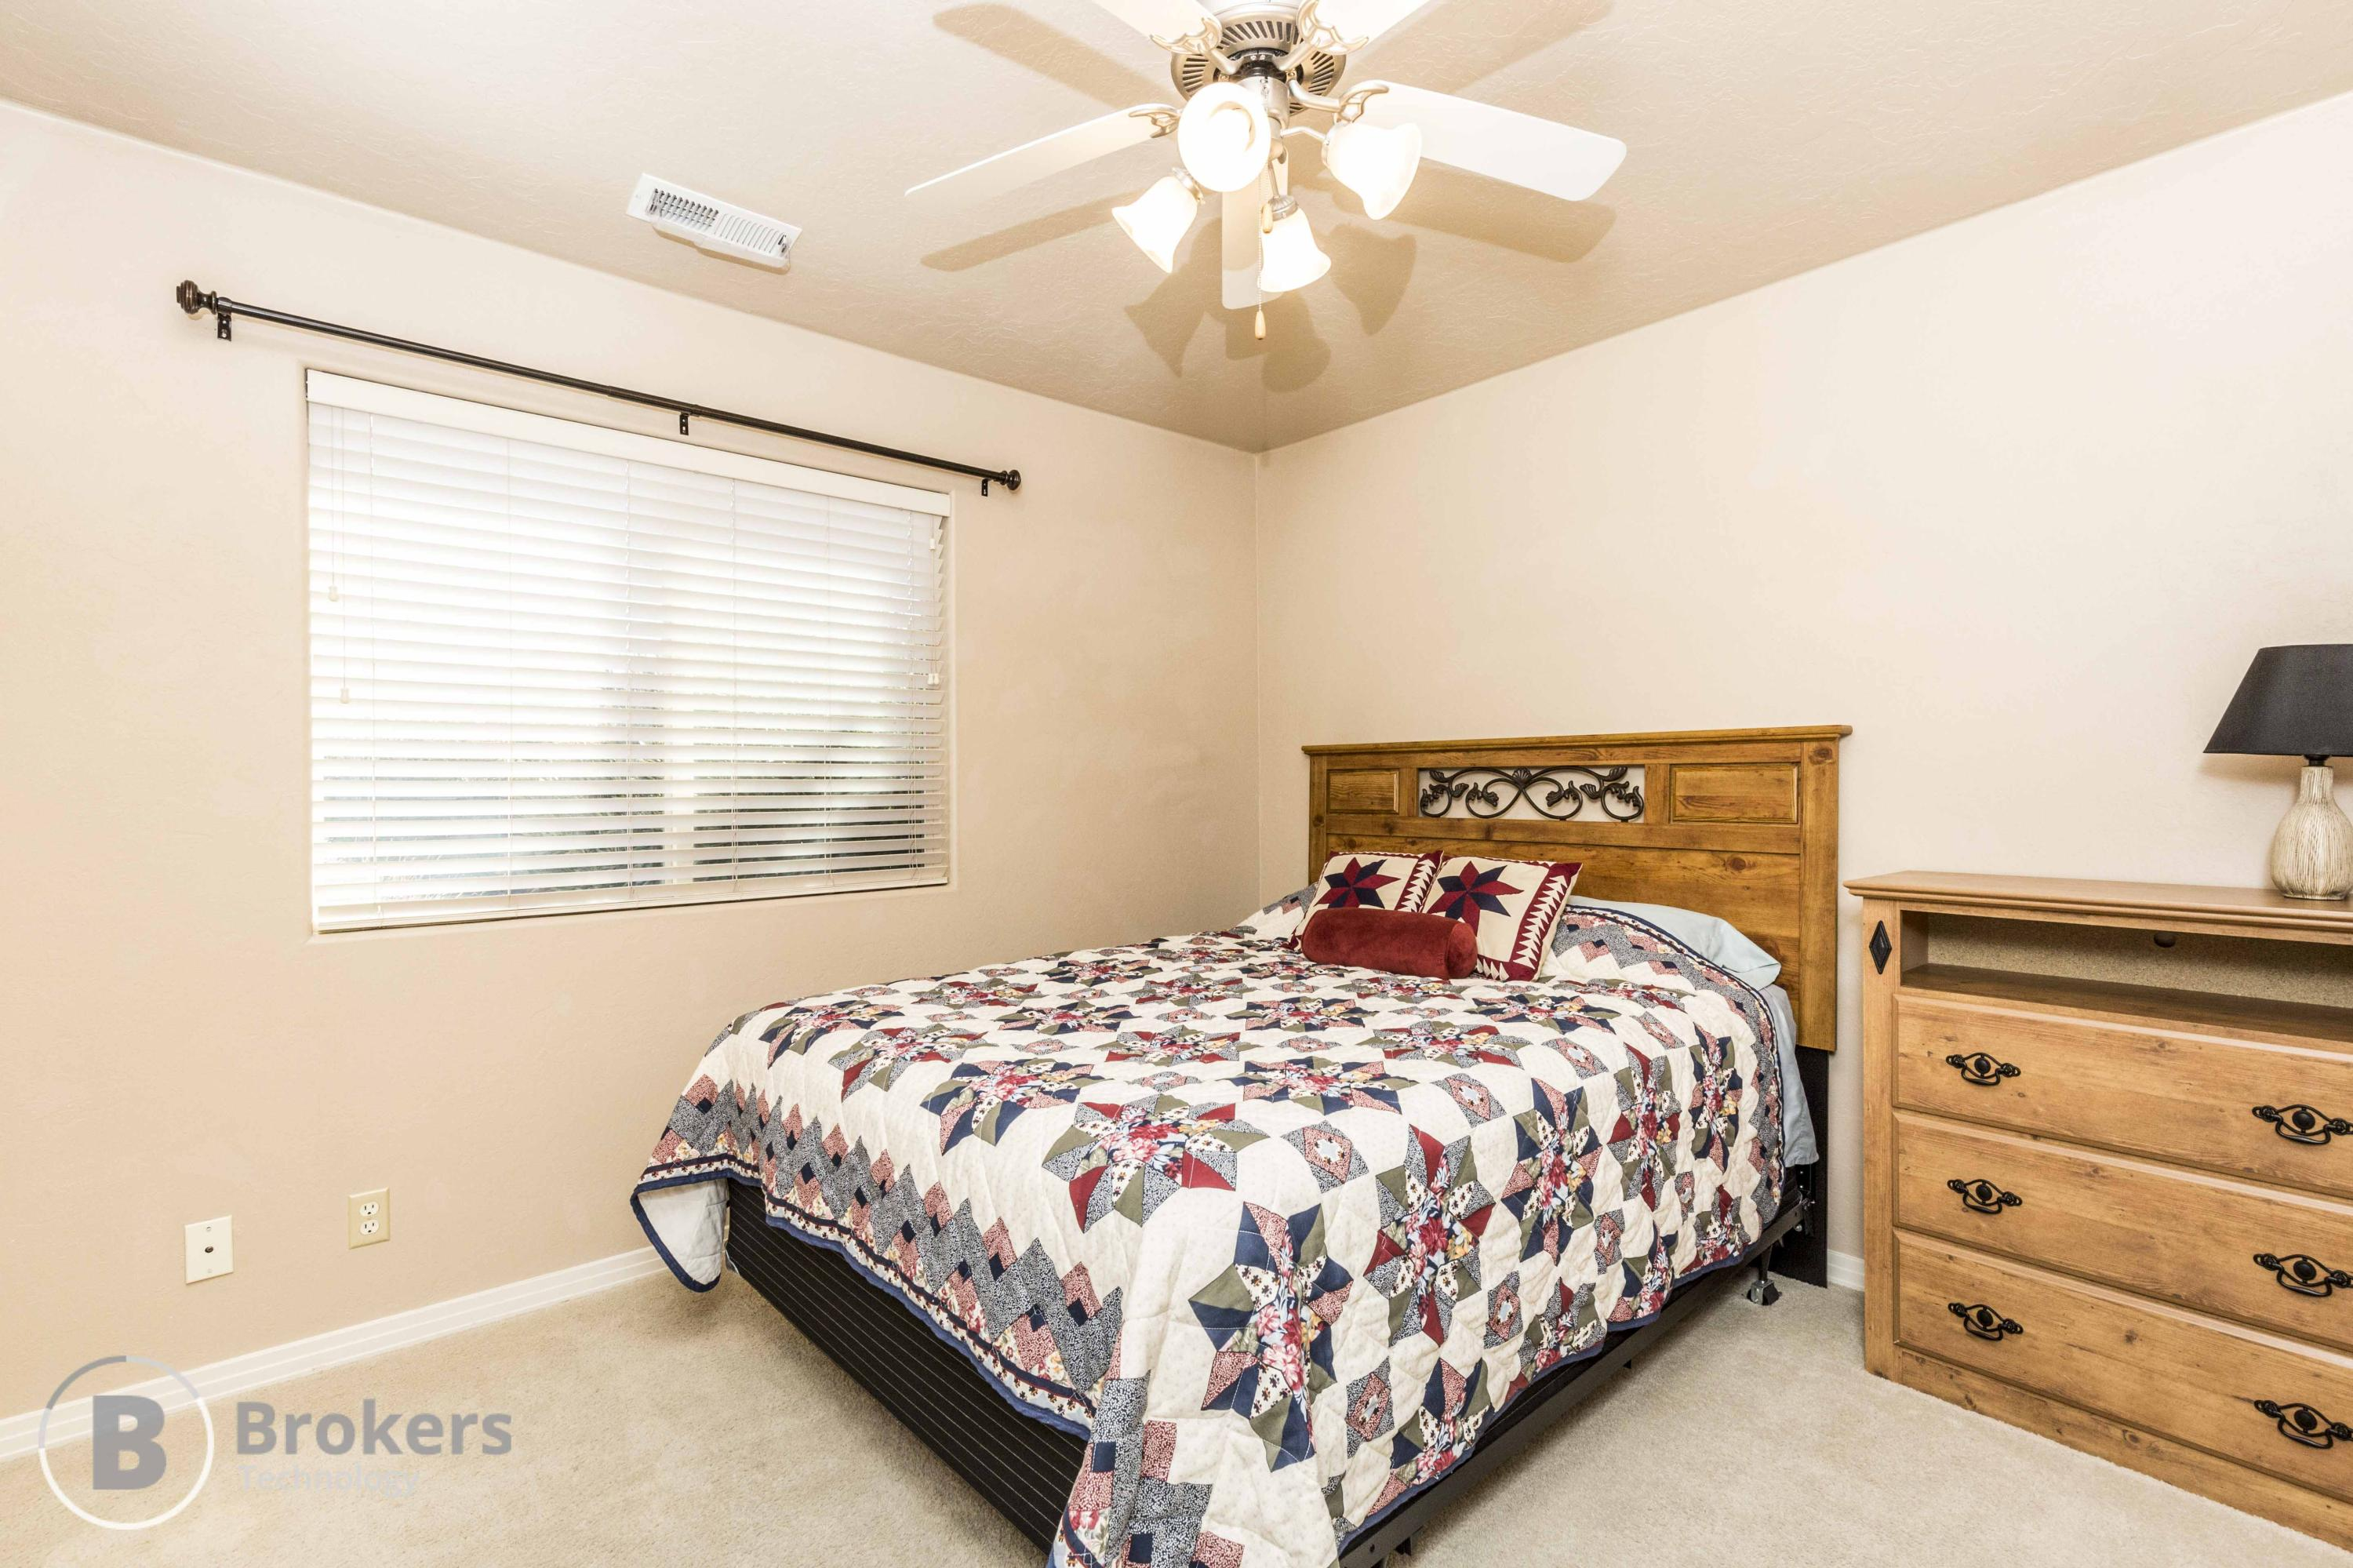 This is a beautiful home in a great neighborhood with wonderful amenities. Enjoy a pool and the outdoors without all the upkeep. This is an ideal property for a vacation home, first-time homebuyer, or anyone looking for a great value in a great property. Check out the full 3D tour by pasting this link into your website browser. https://my.matterport.com/show/?m=4fWuJ13hCK9&brand=0